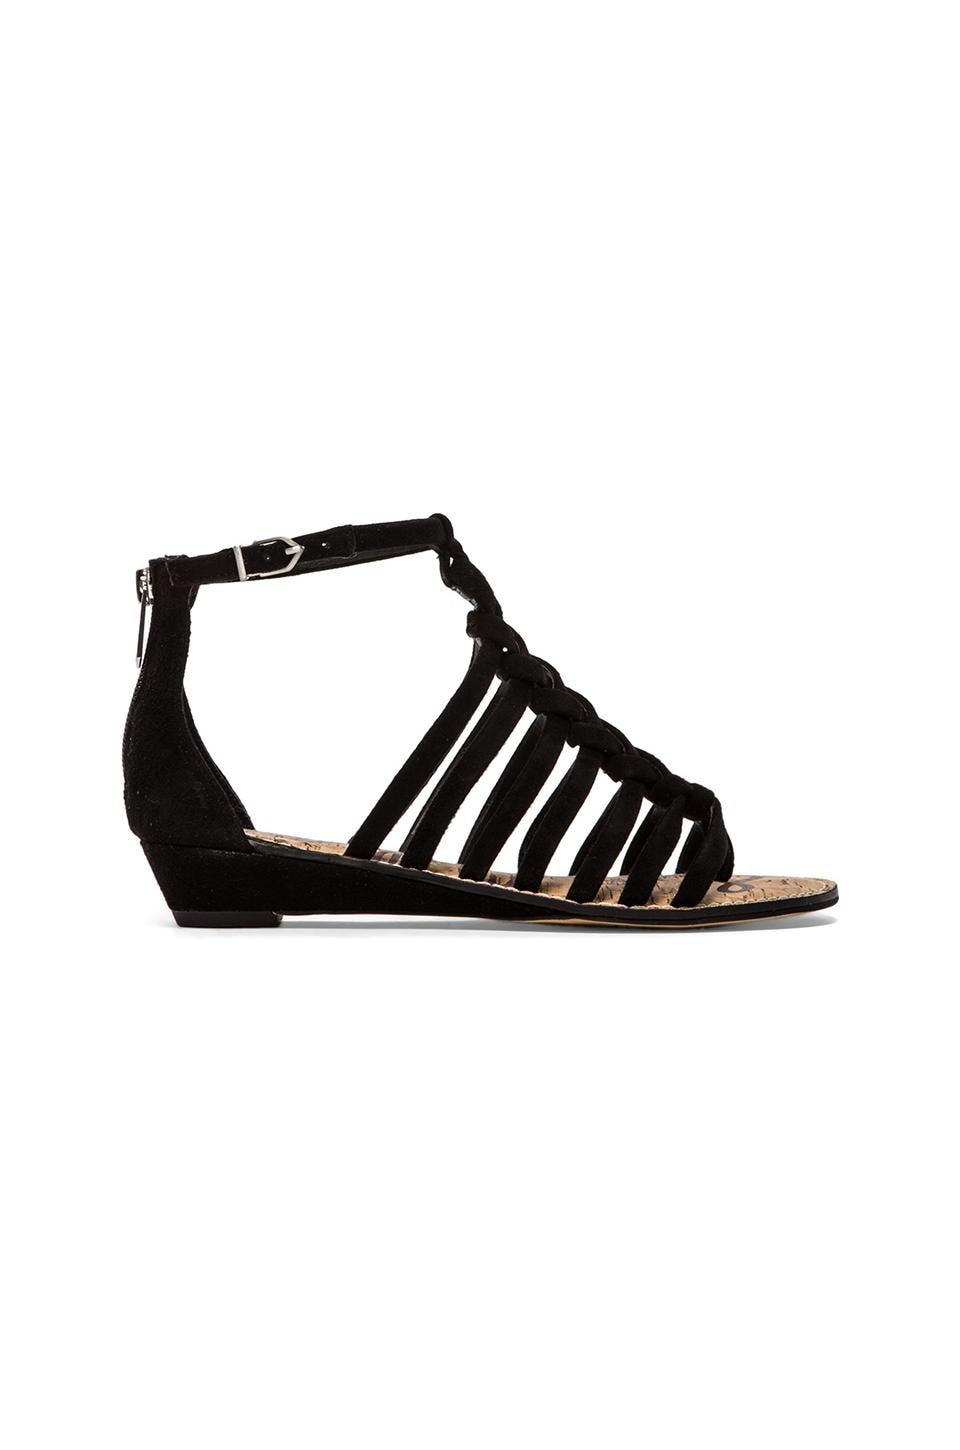 Sam Edelman Dakota Sandal in Black